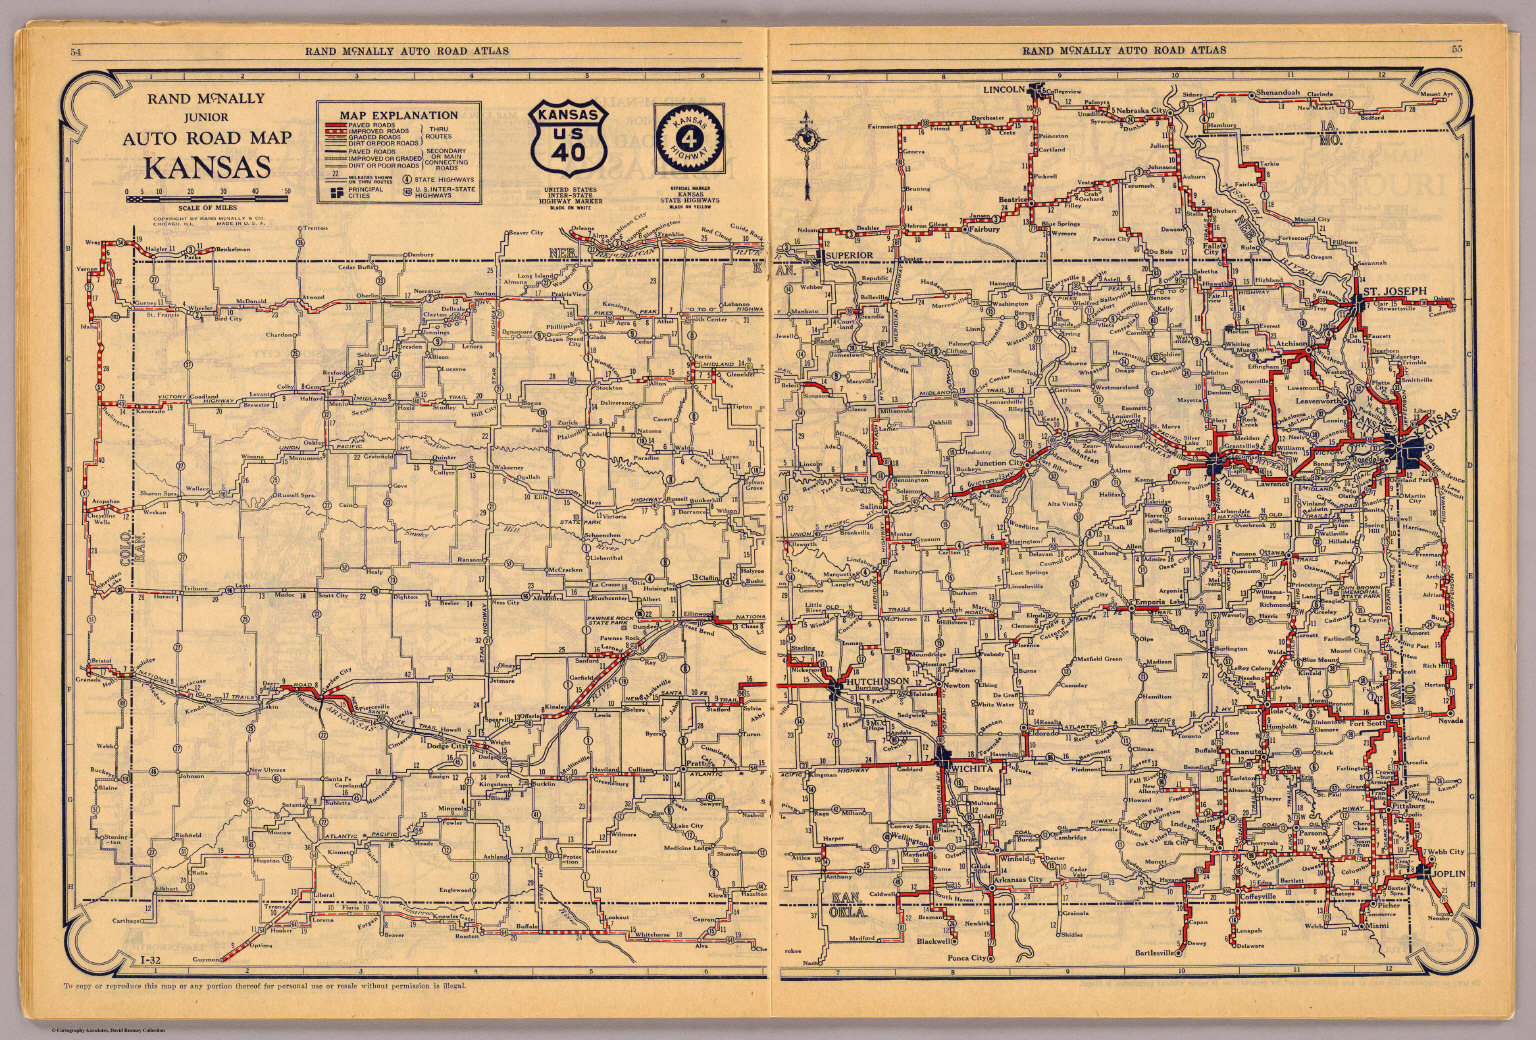 Kansas. - David Rumsey Historical Map Collection on map of south dakota wyoming and colorado, detroit map colorado, large map of colorado, map of kansas and colorado, cities and towns in colorado, kansas to colorado, printable map of colorado, map of southeast colorado, states that border colorado, kansas colorado border, mountain road map colorado,